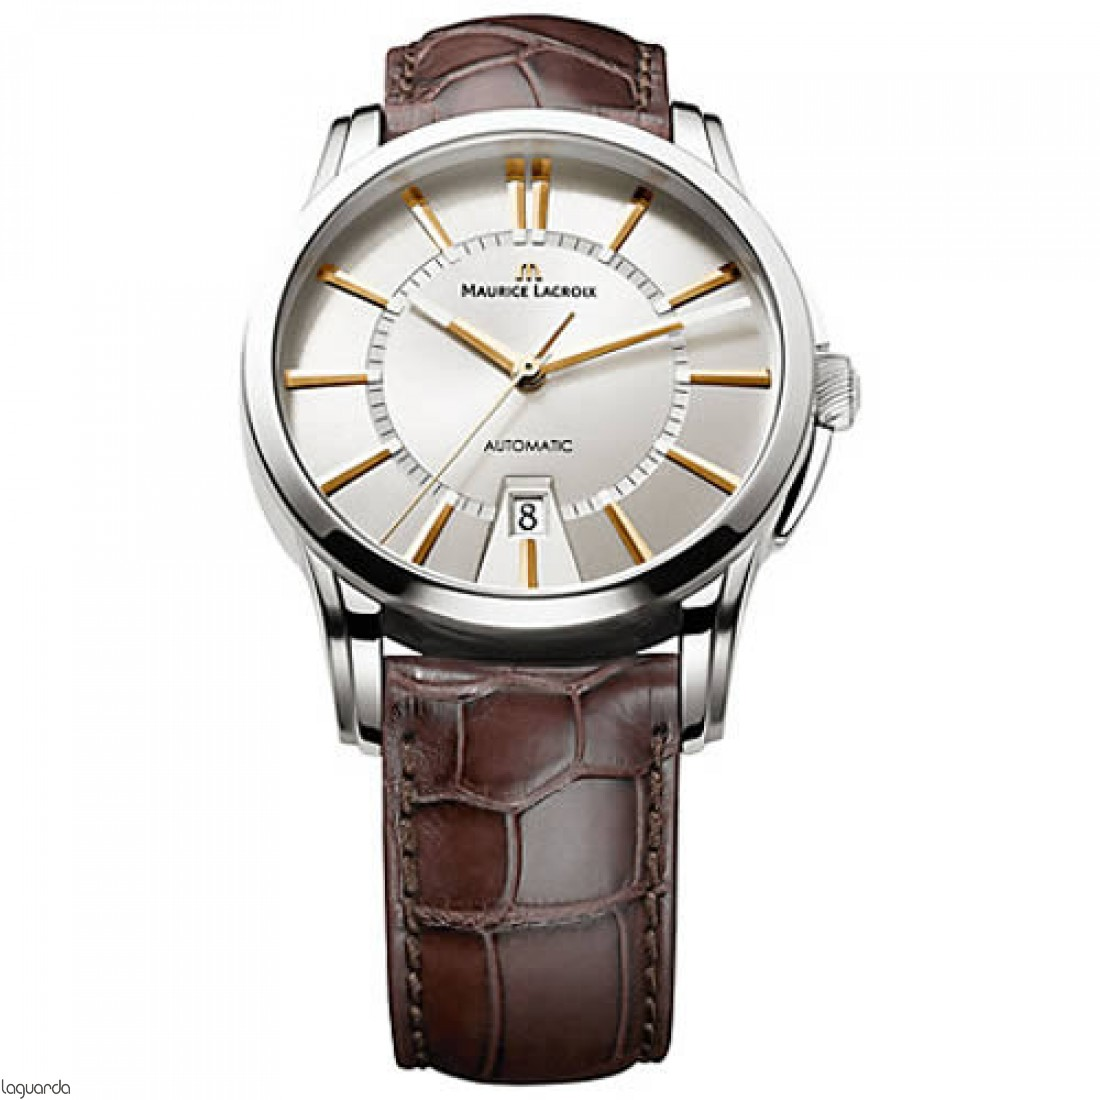 Reloj Maurice Lacroix Date PT6148-SS001-131